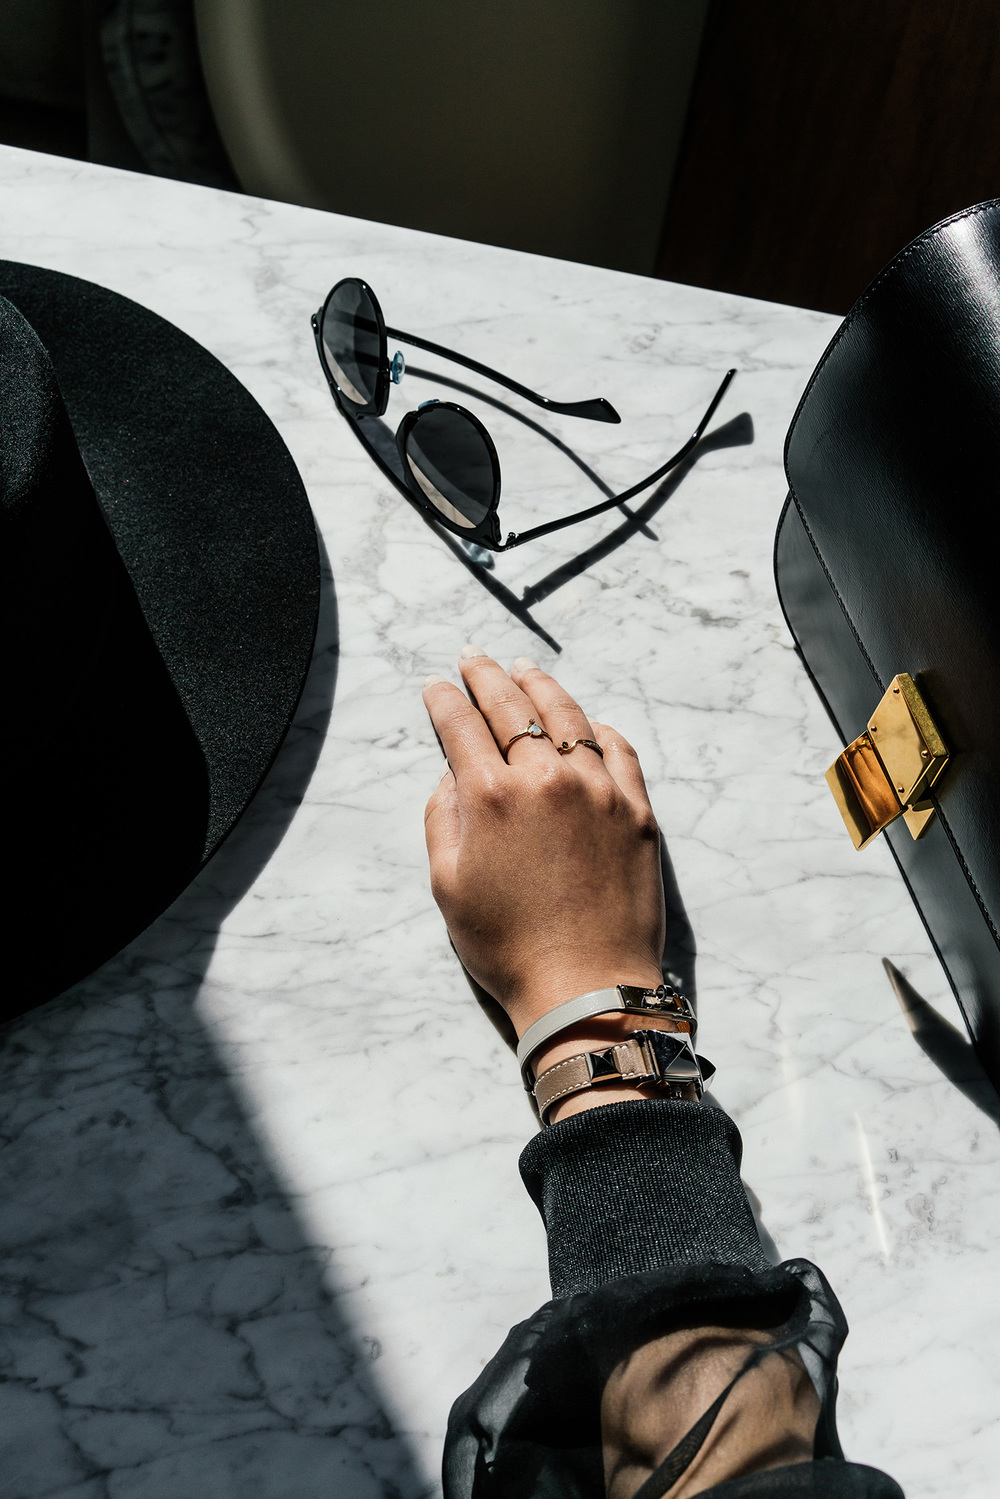 Janessa Leone Hat ,  Dior Sunglasses , Céline Bag, Hermes Bracelet and Watch,  Wwake Rings